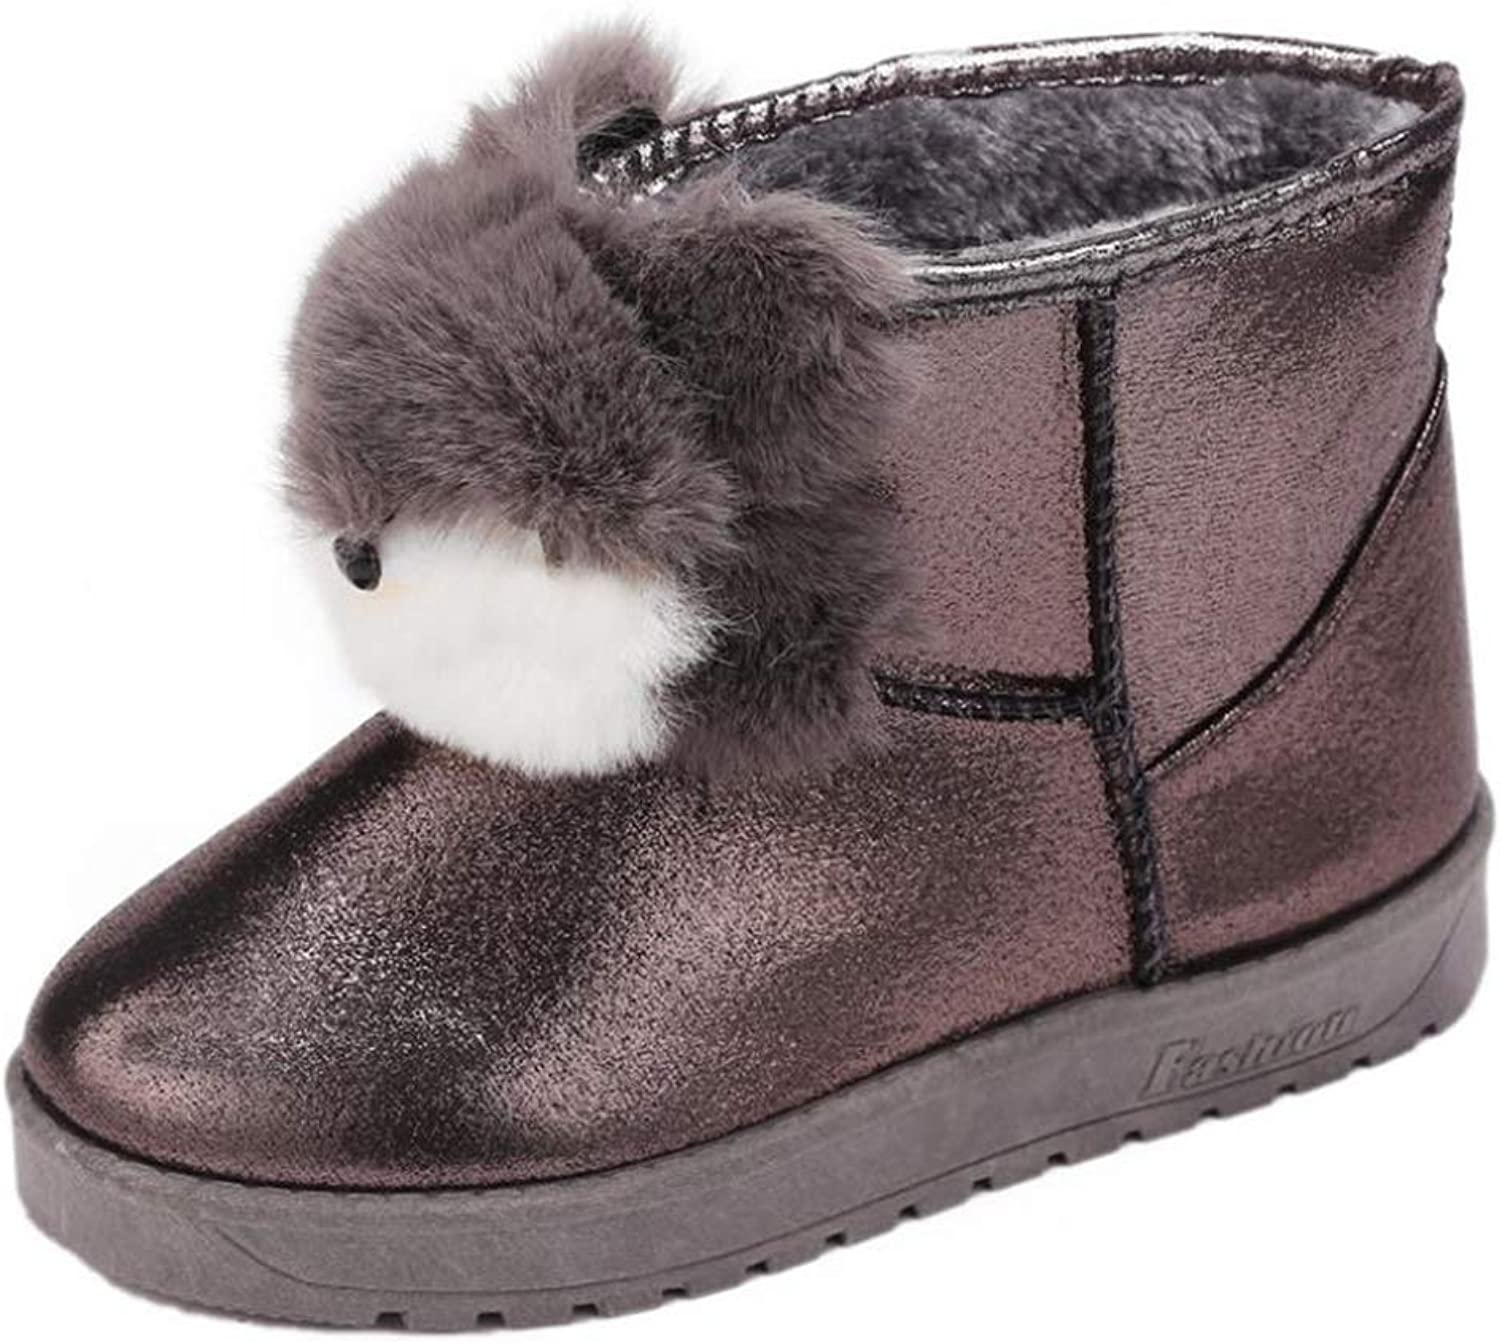 Quality.A Women's Cartoon Fox Snow Boots Autumn and Winter Flat Boots Cute Warm Boots